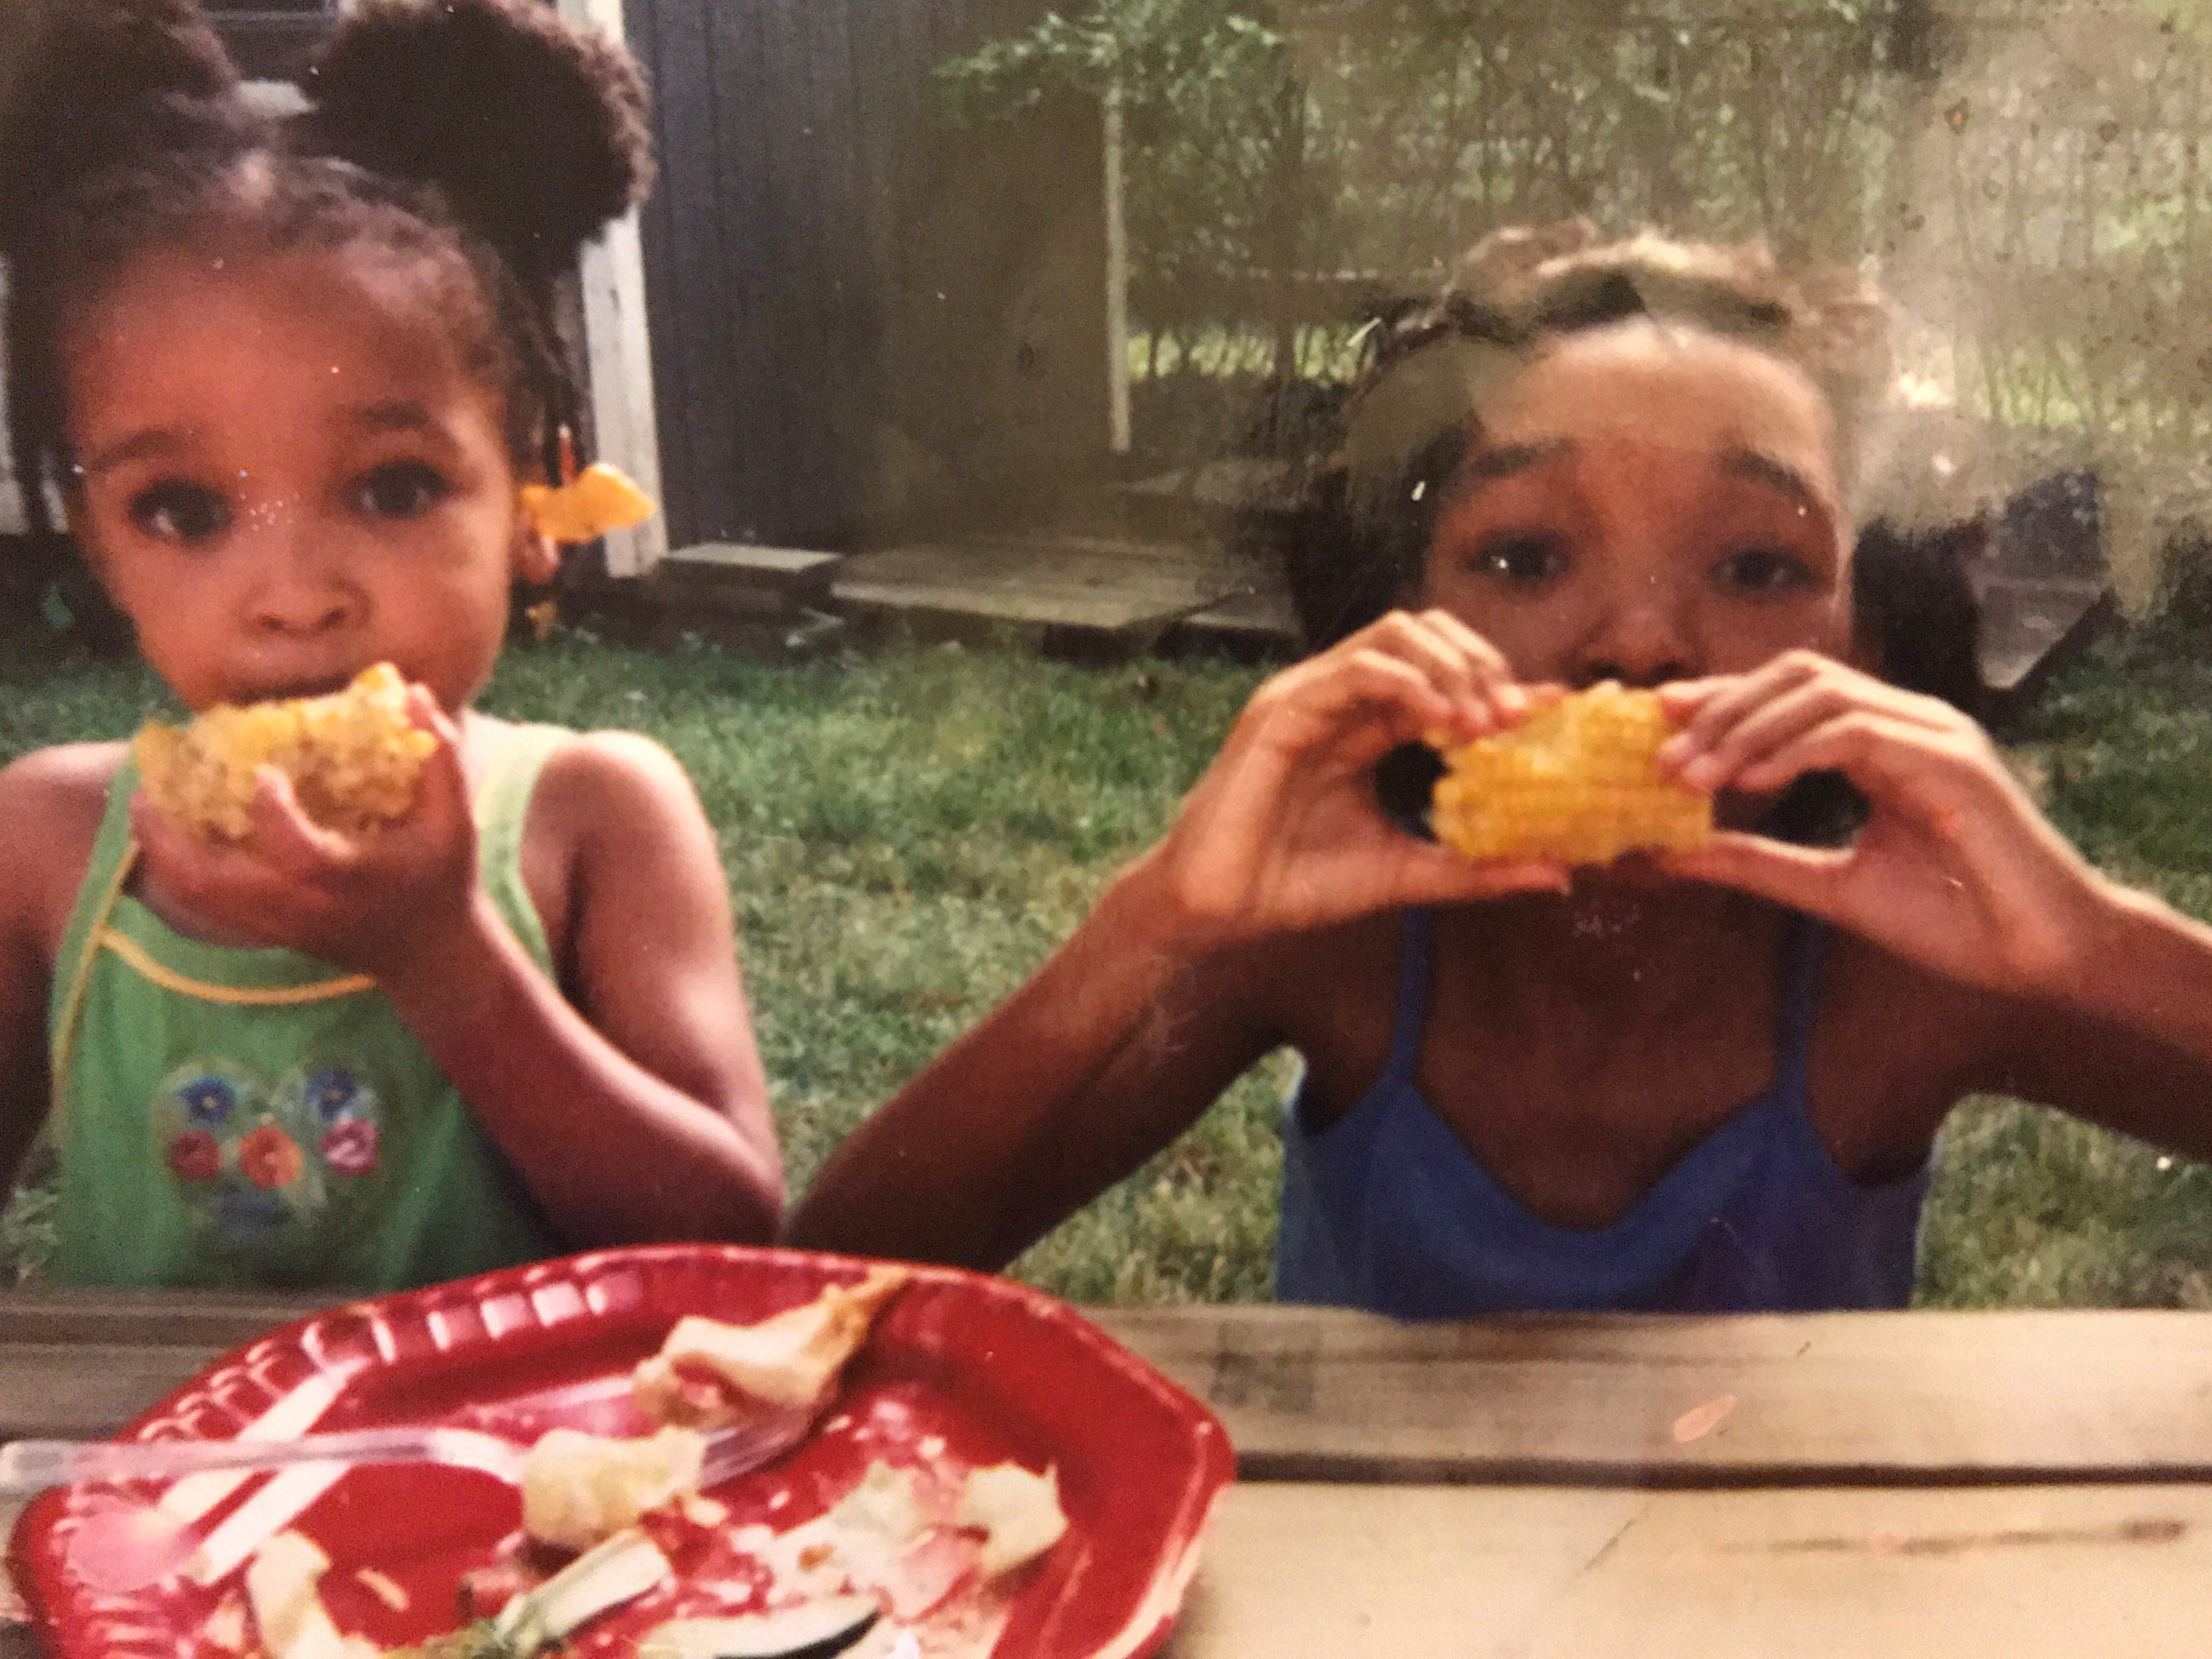 Shaylah Brown and her younger sister on a summer afternoon enjoying corn on the cob in 2003.